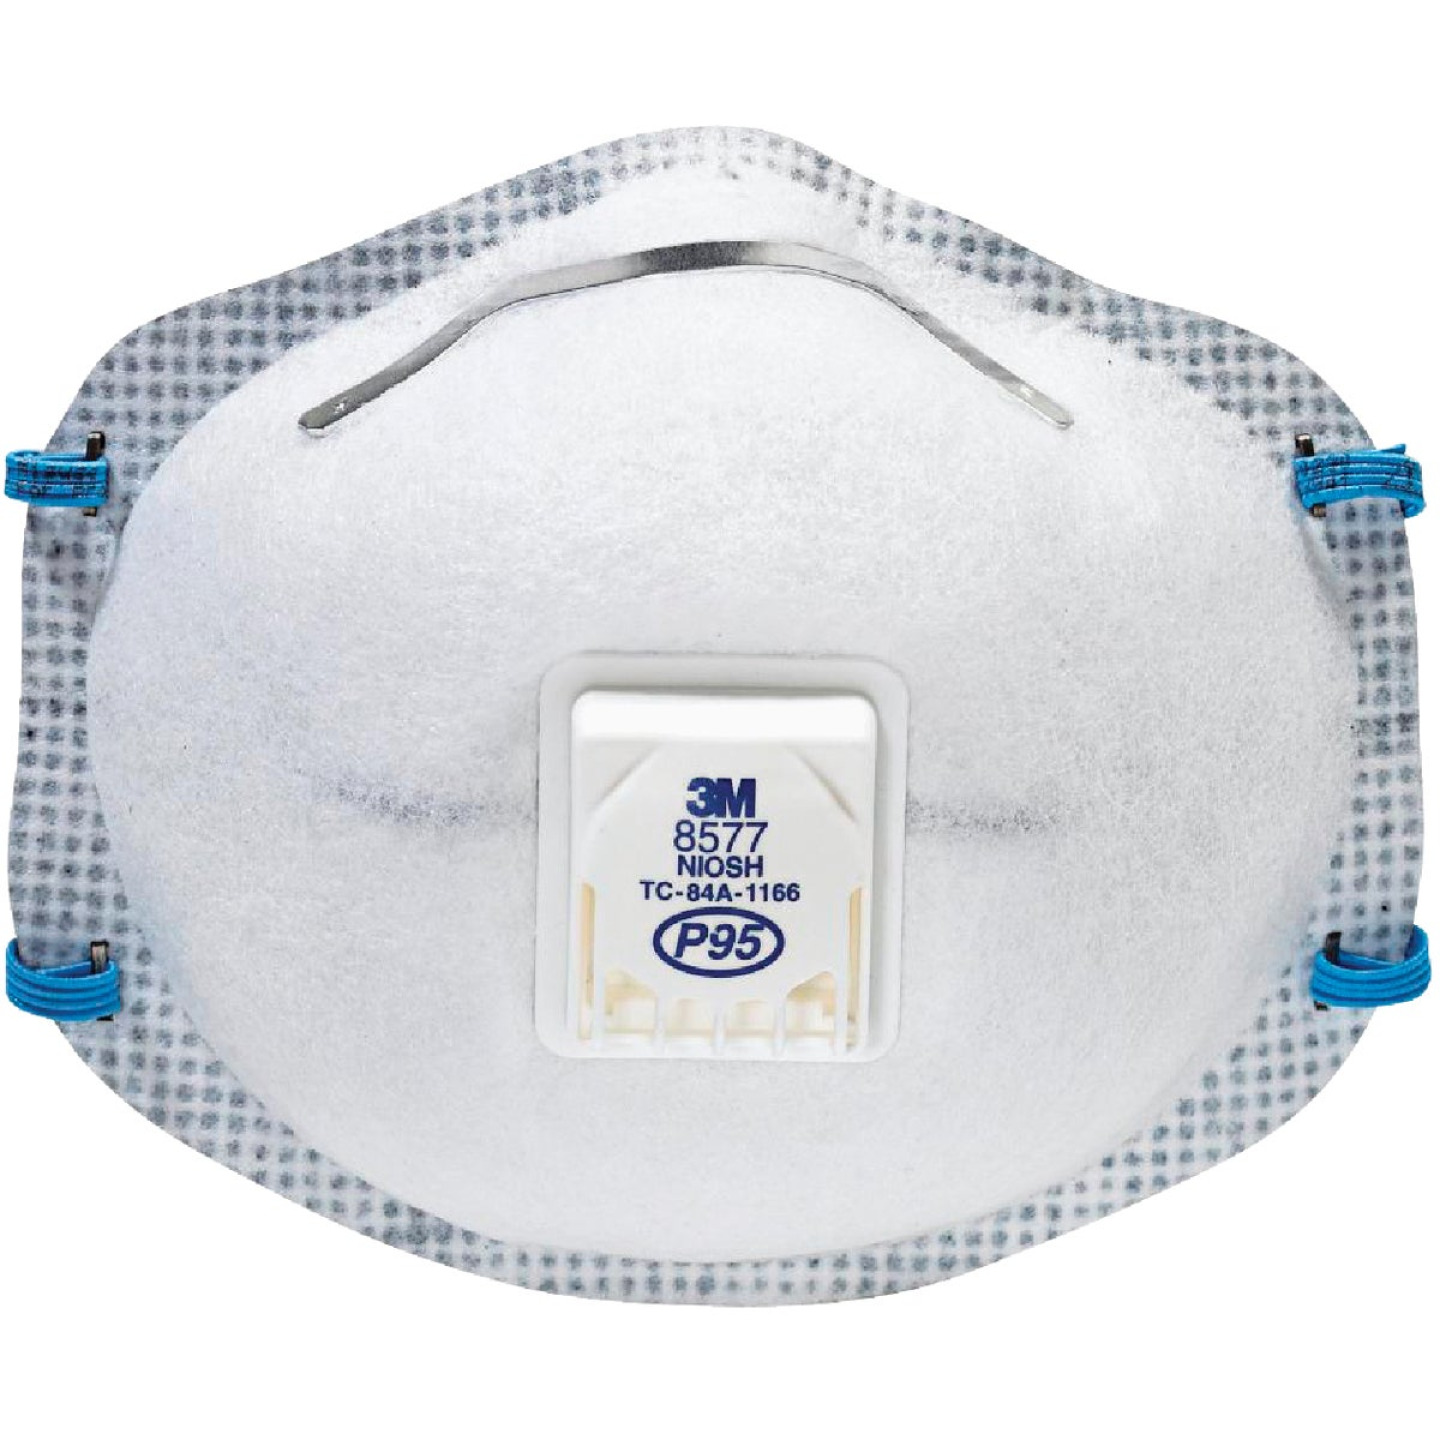 3M P95 Particulate Respirator with Nuisance Level Organic Vapor Relief (10-Pack) Image 1